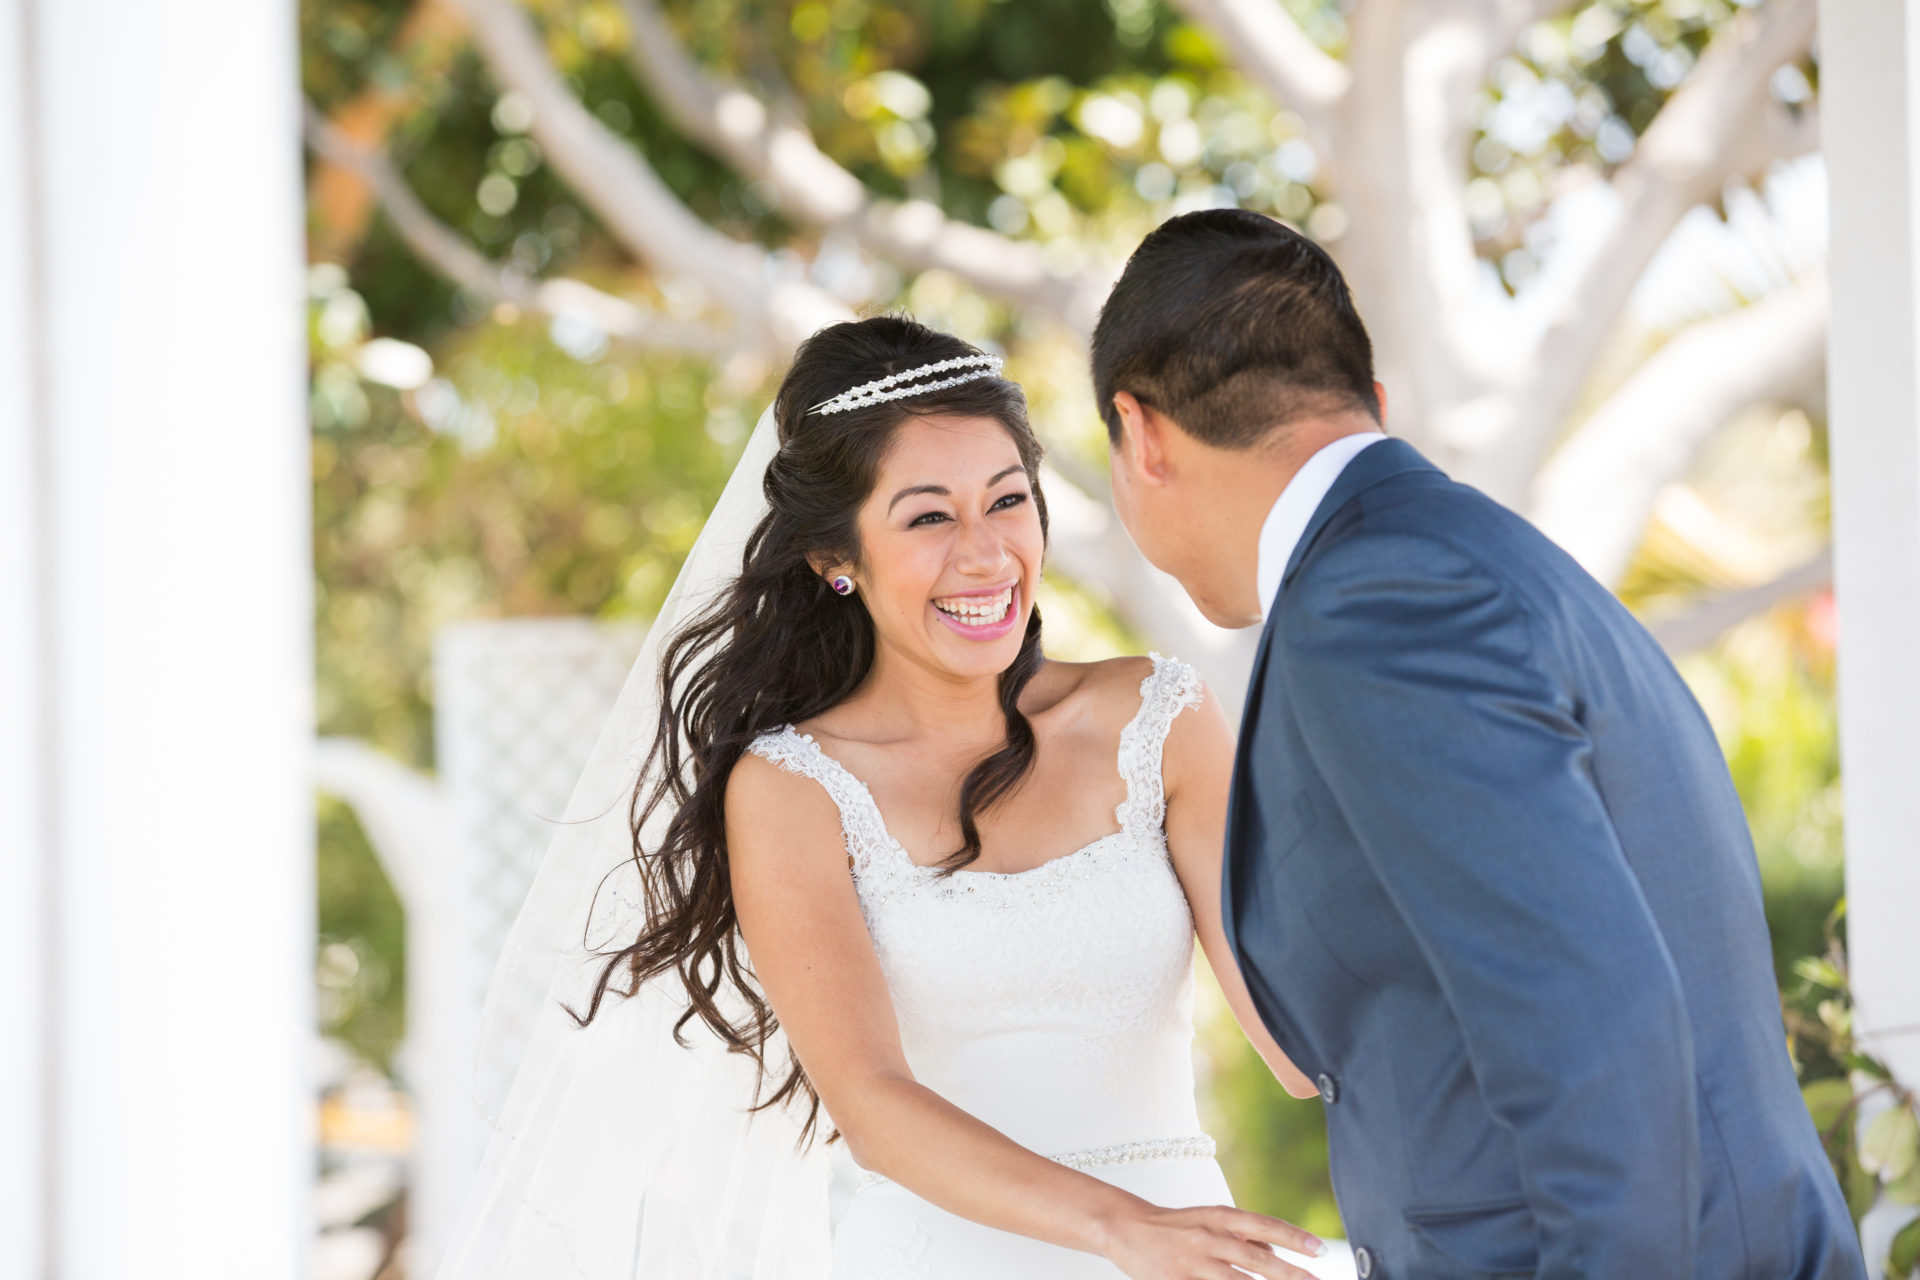 manny-pittsburgh-wedding-photographer-in-california-at-newport-beach-23